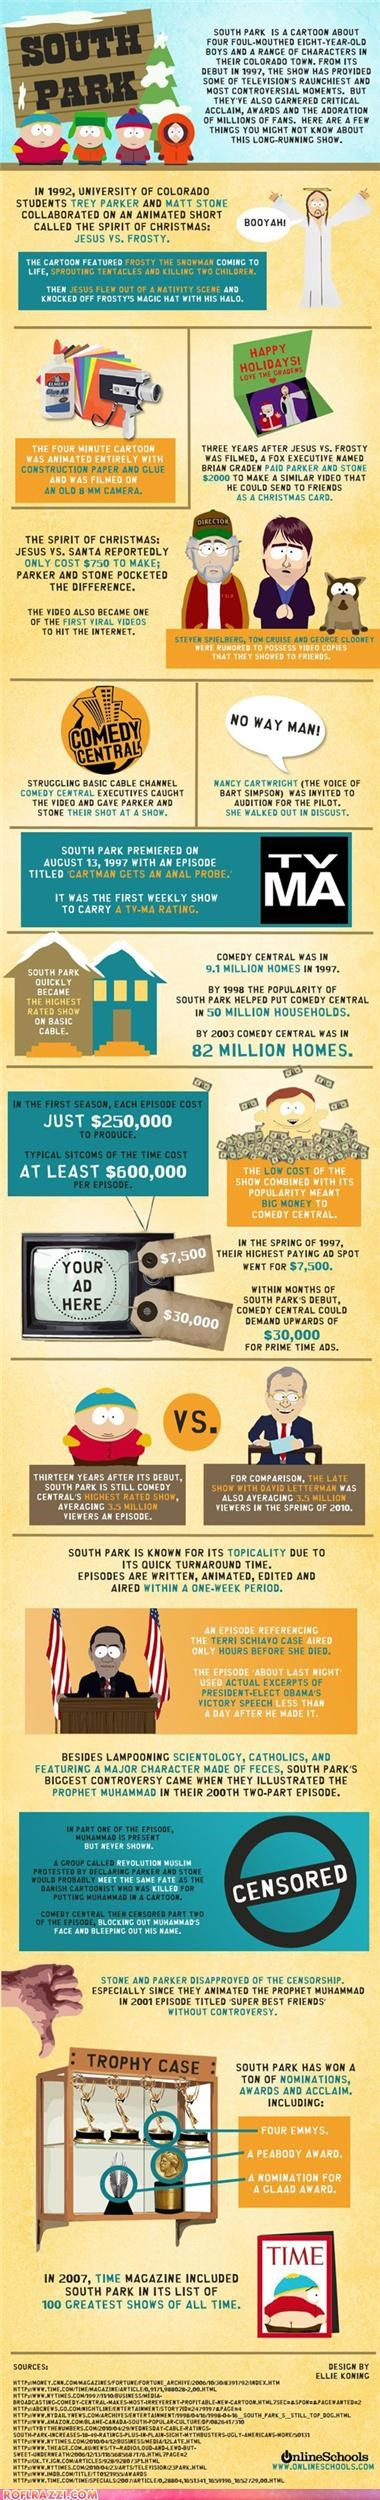 animation,cool,infographic,South Park